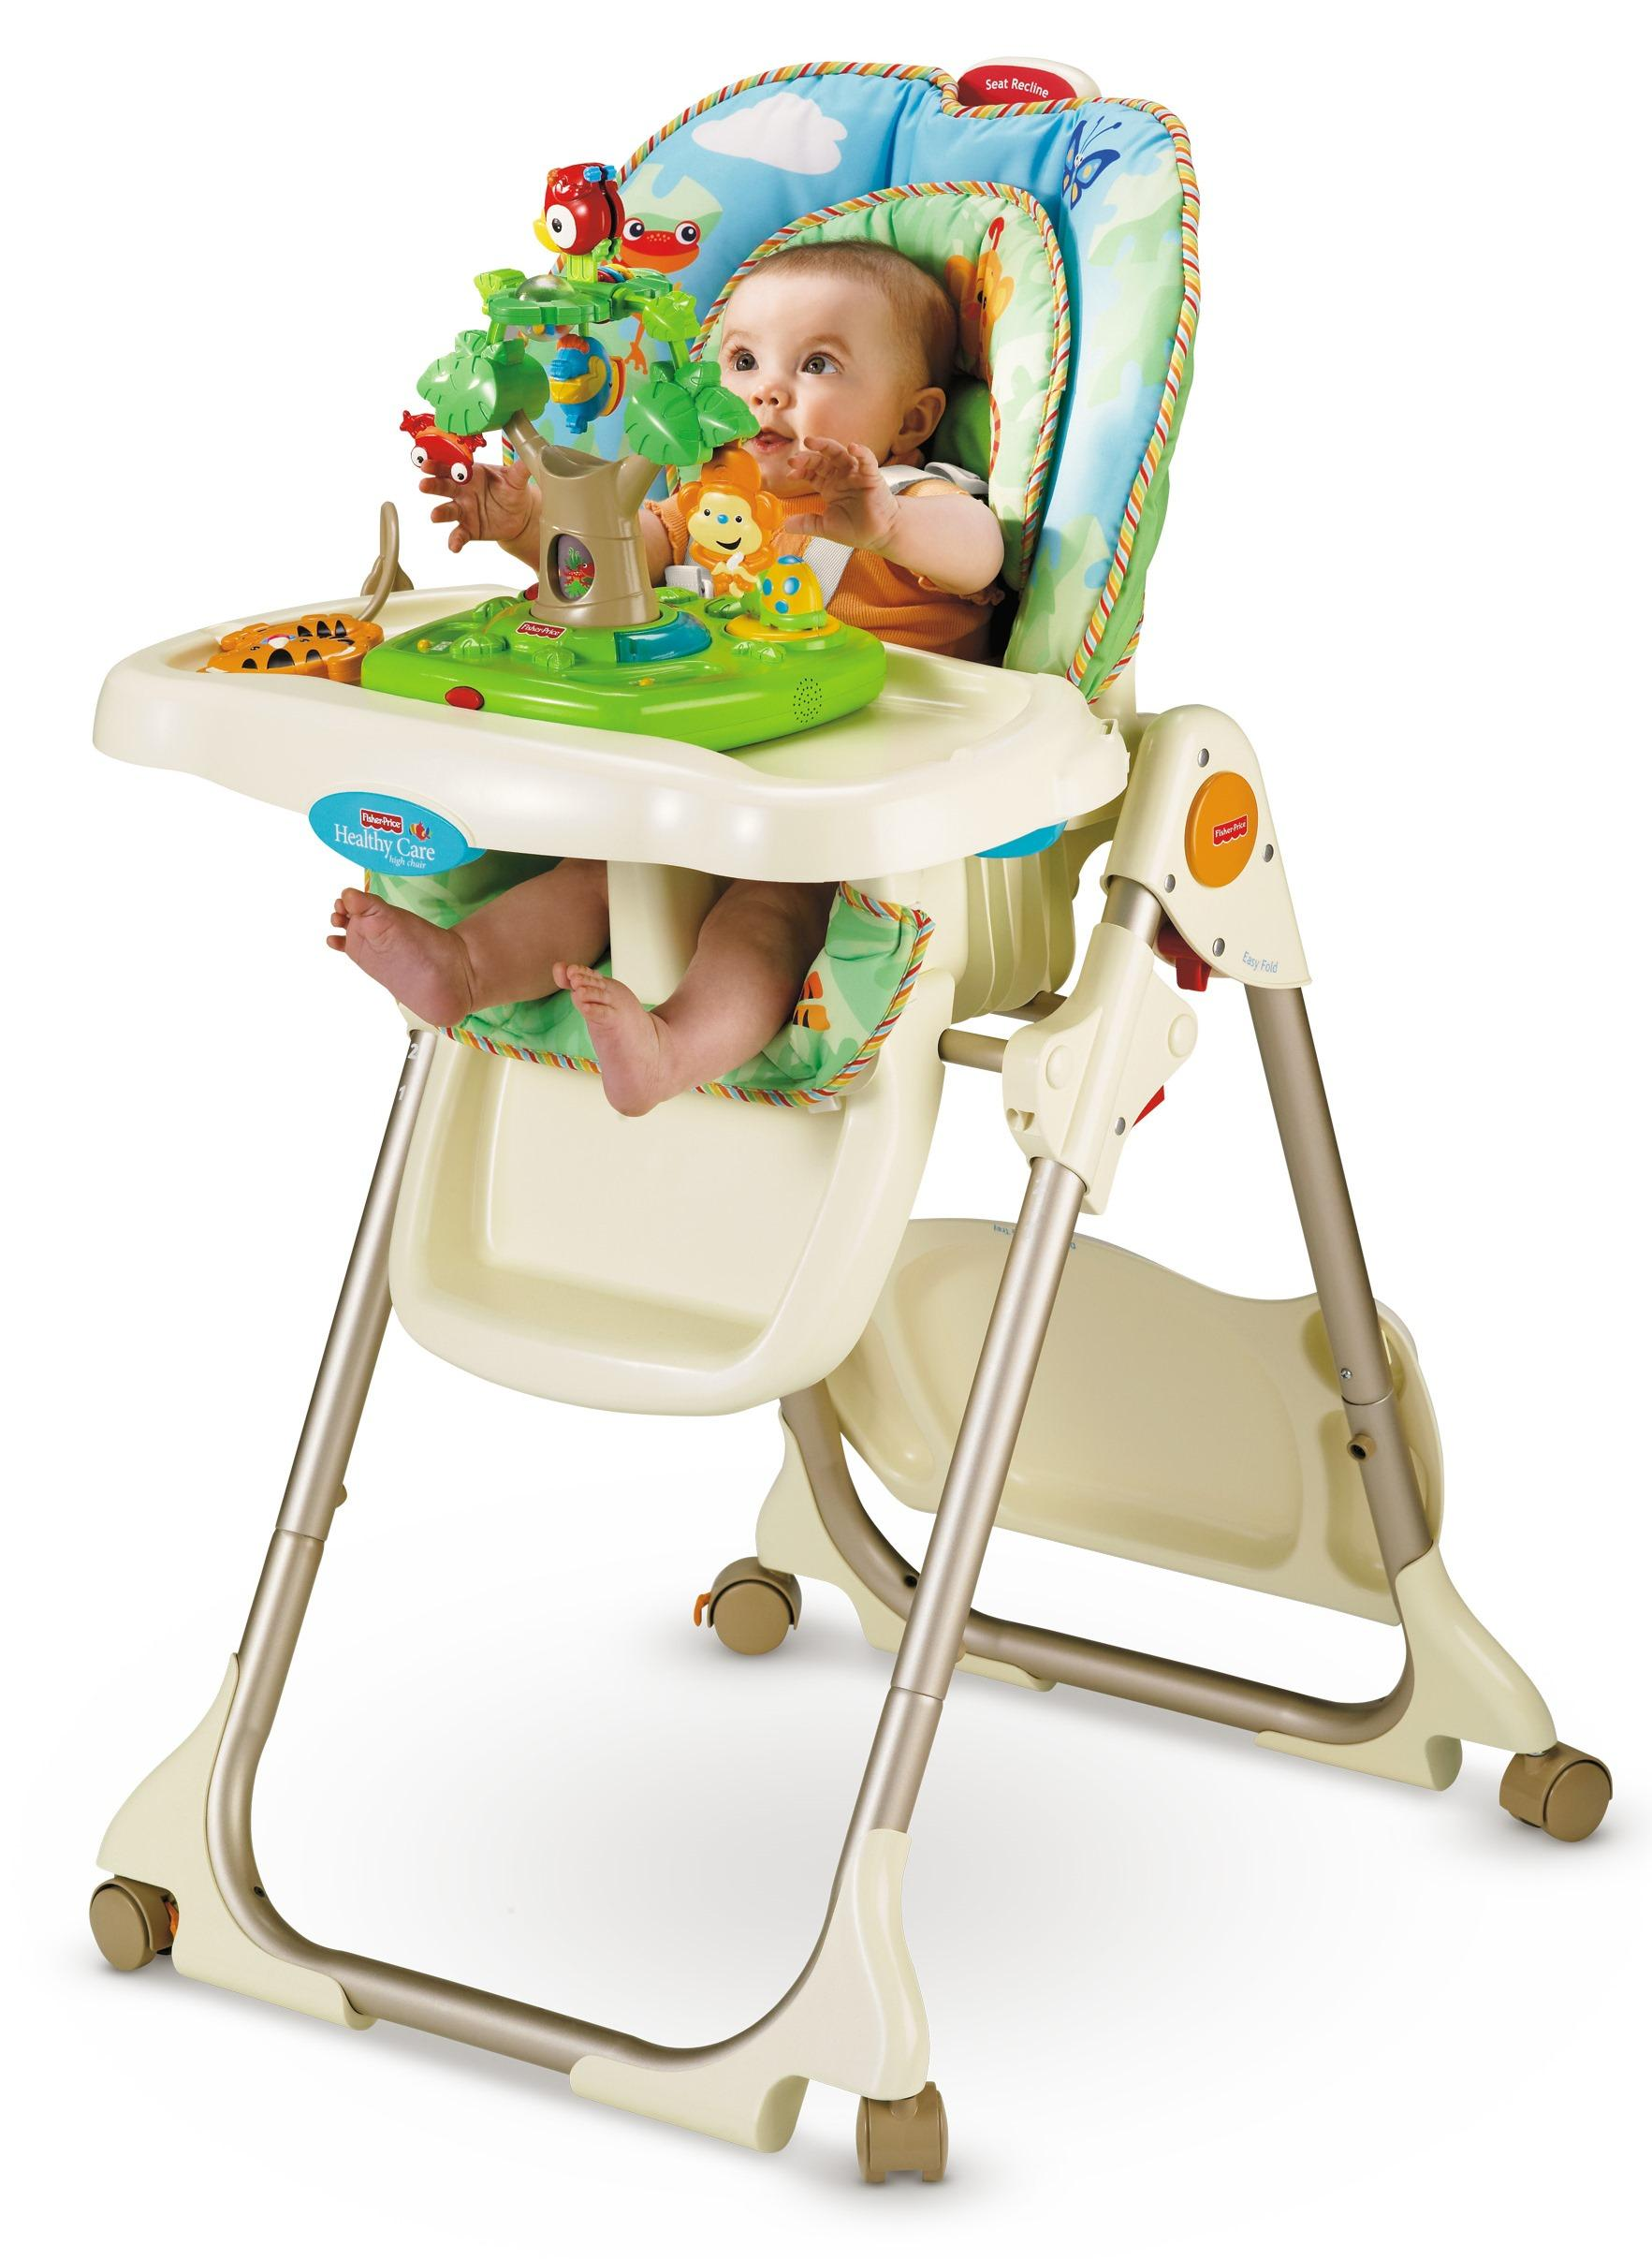 Amazon Com Fisher Price Rainforest Healthy Care High